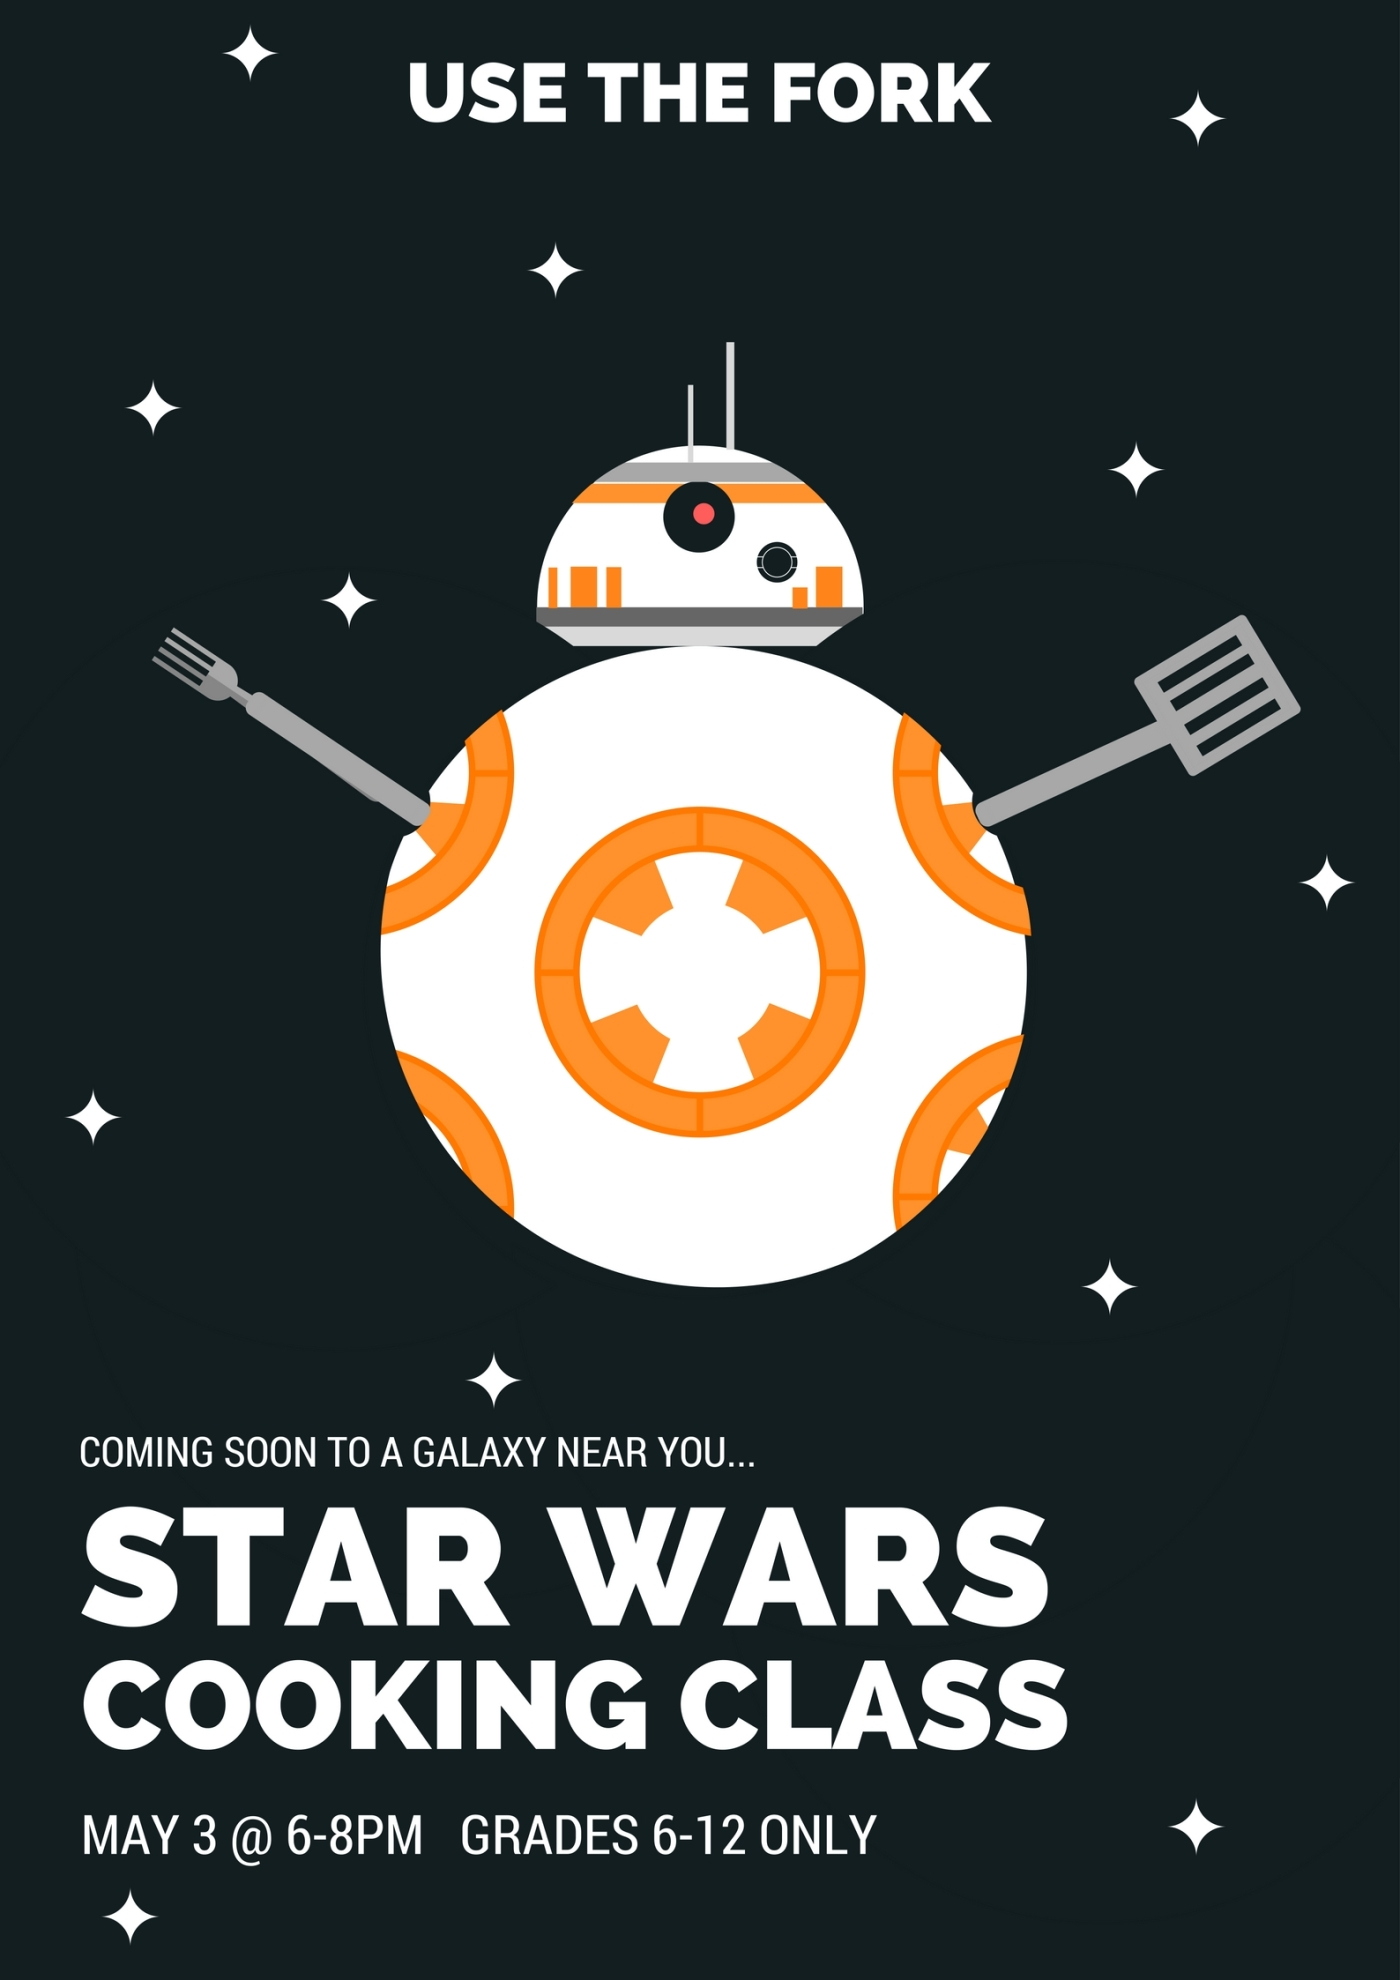 Star Wars Cooking Class flyer